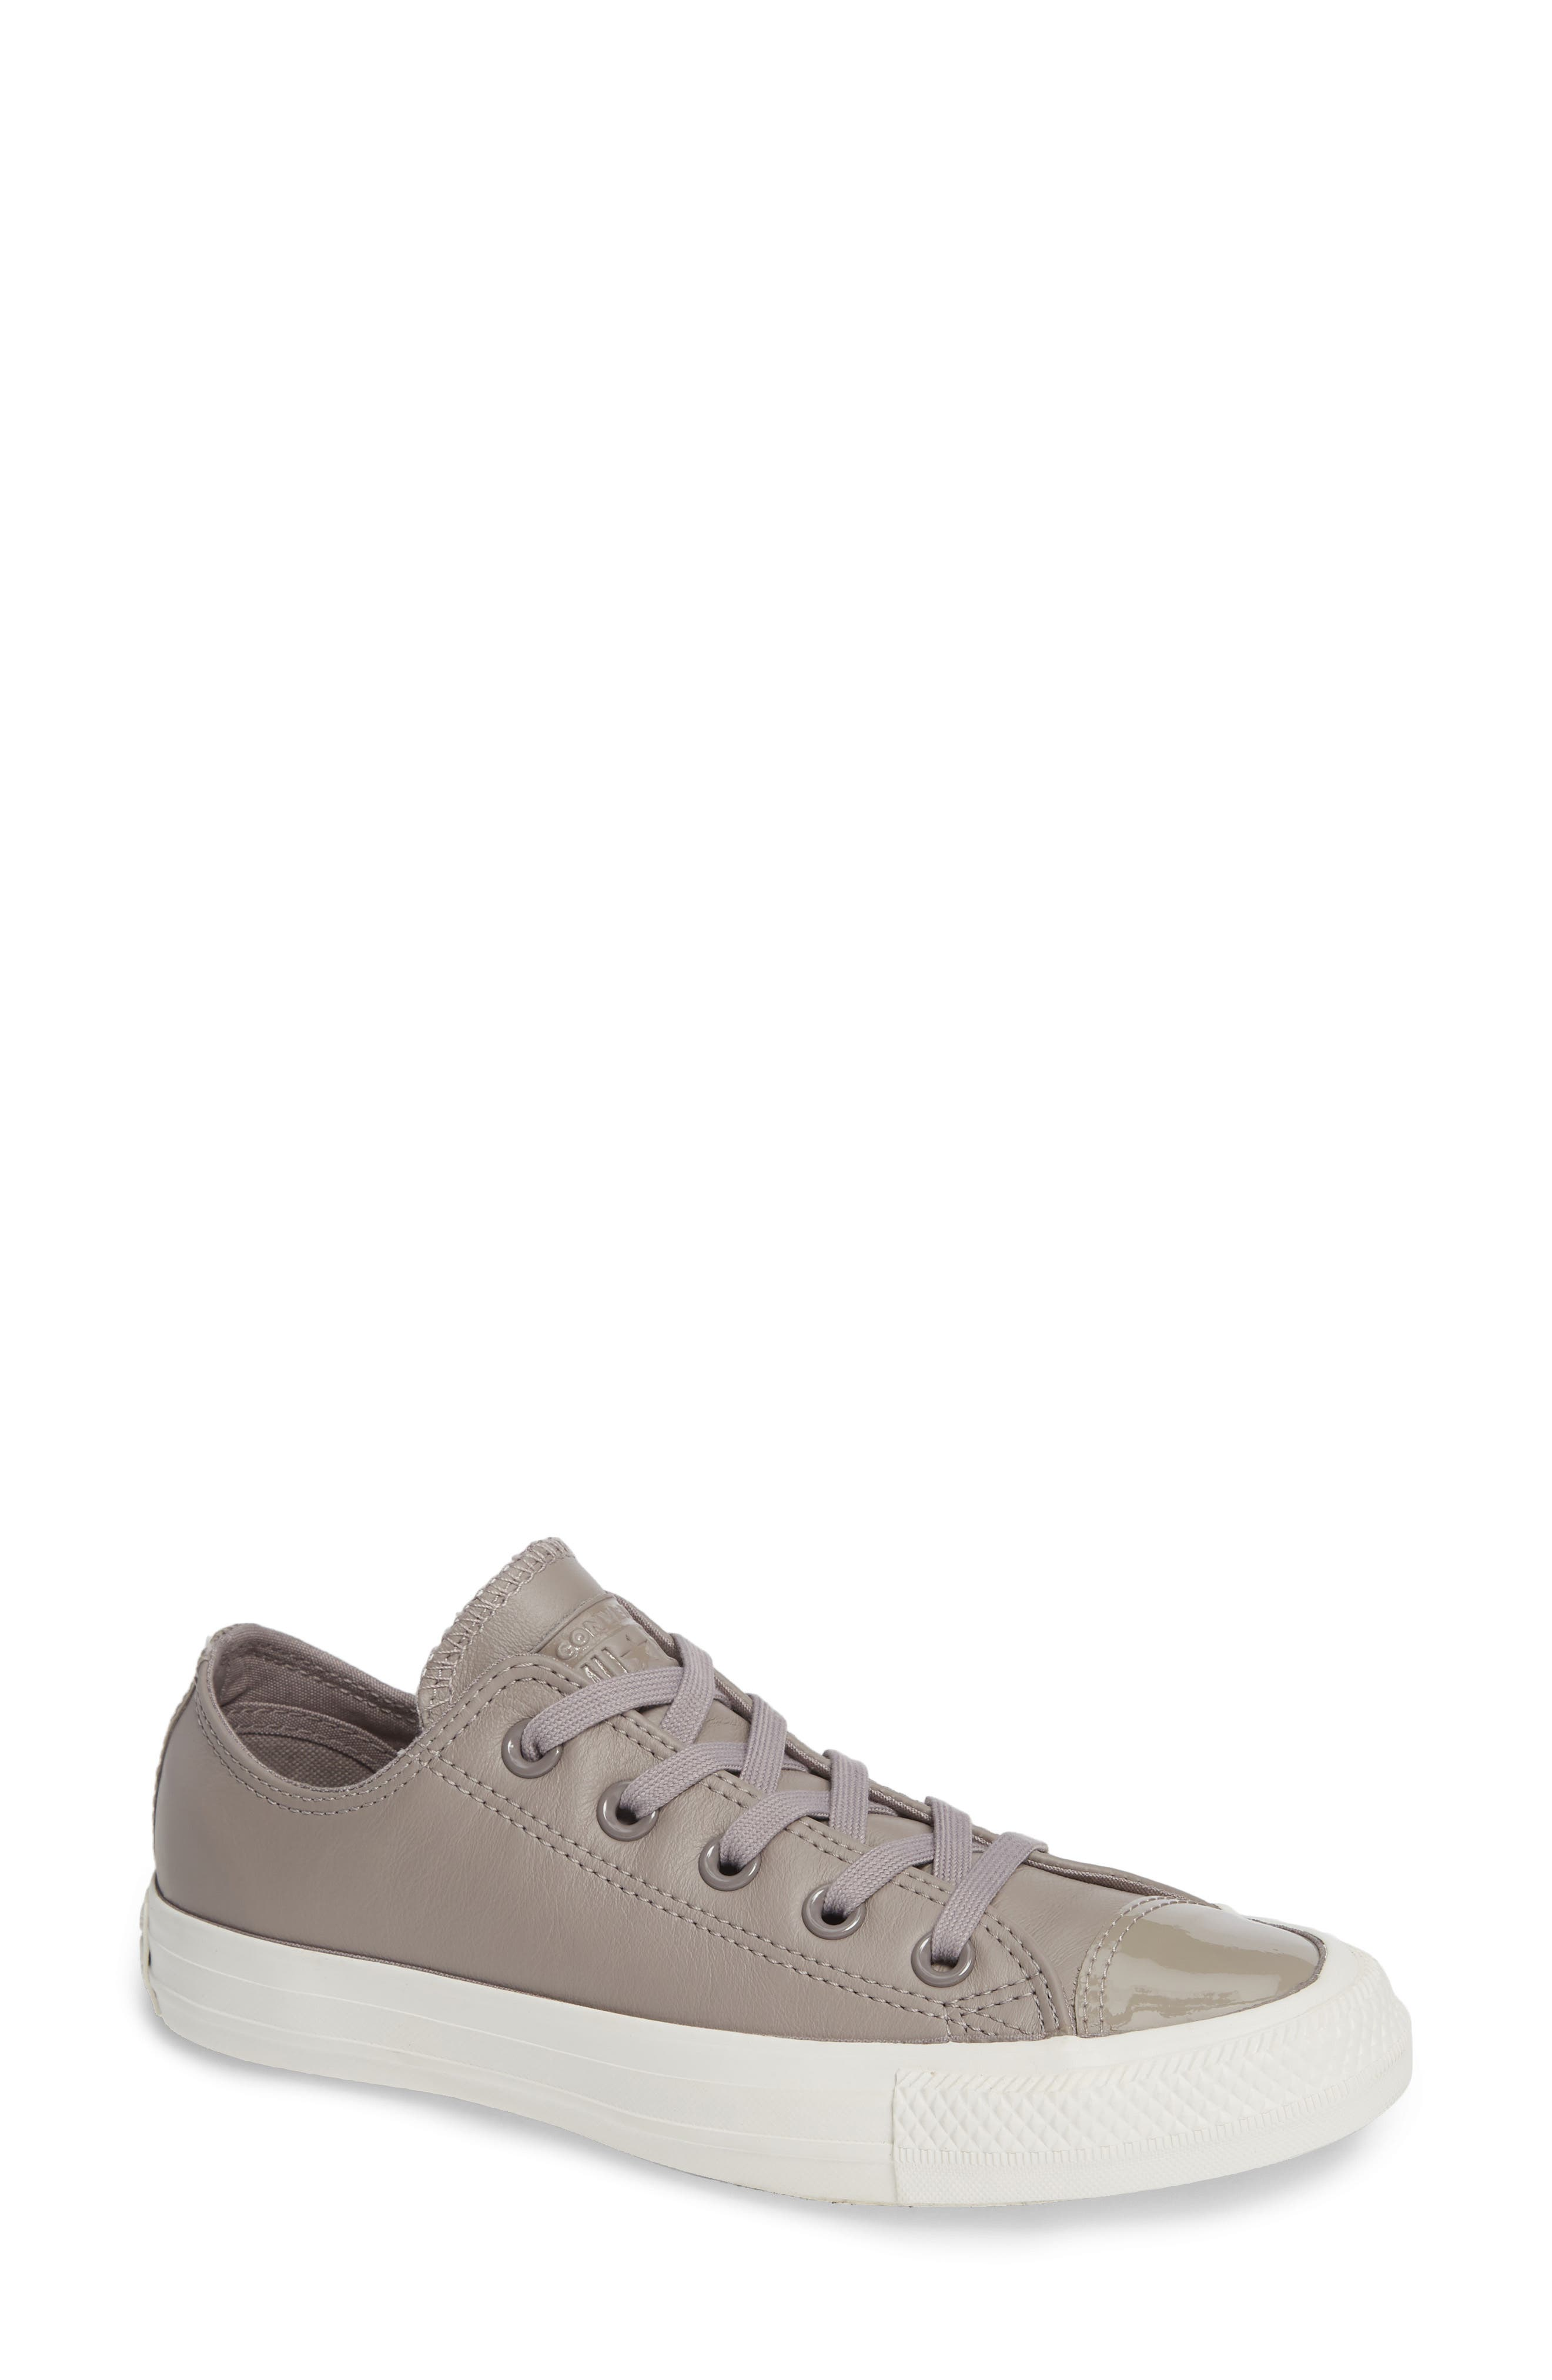 CONVERSE All Star<sup>®</sup> Leather Patent Low Top Sneaker, Main, color, 020